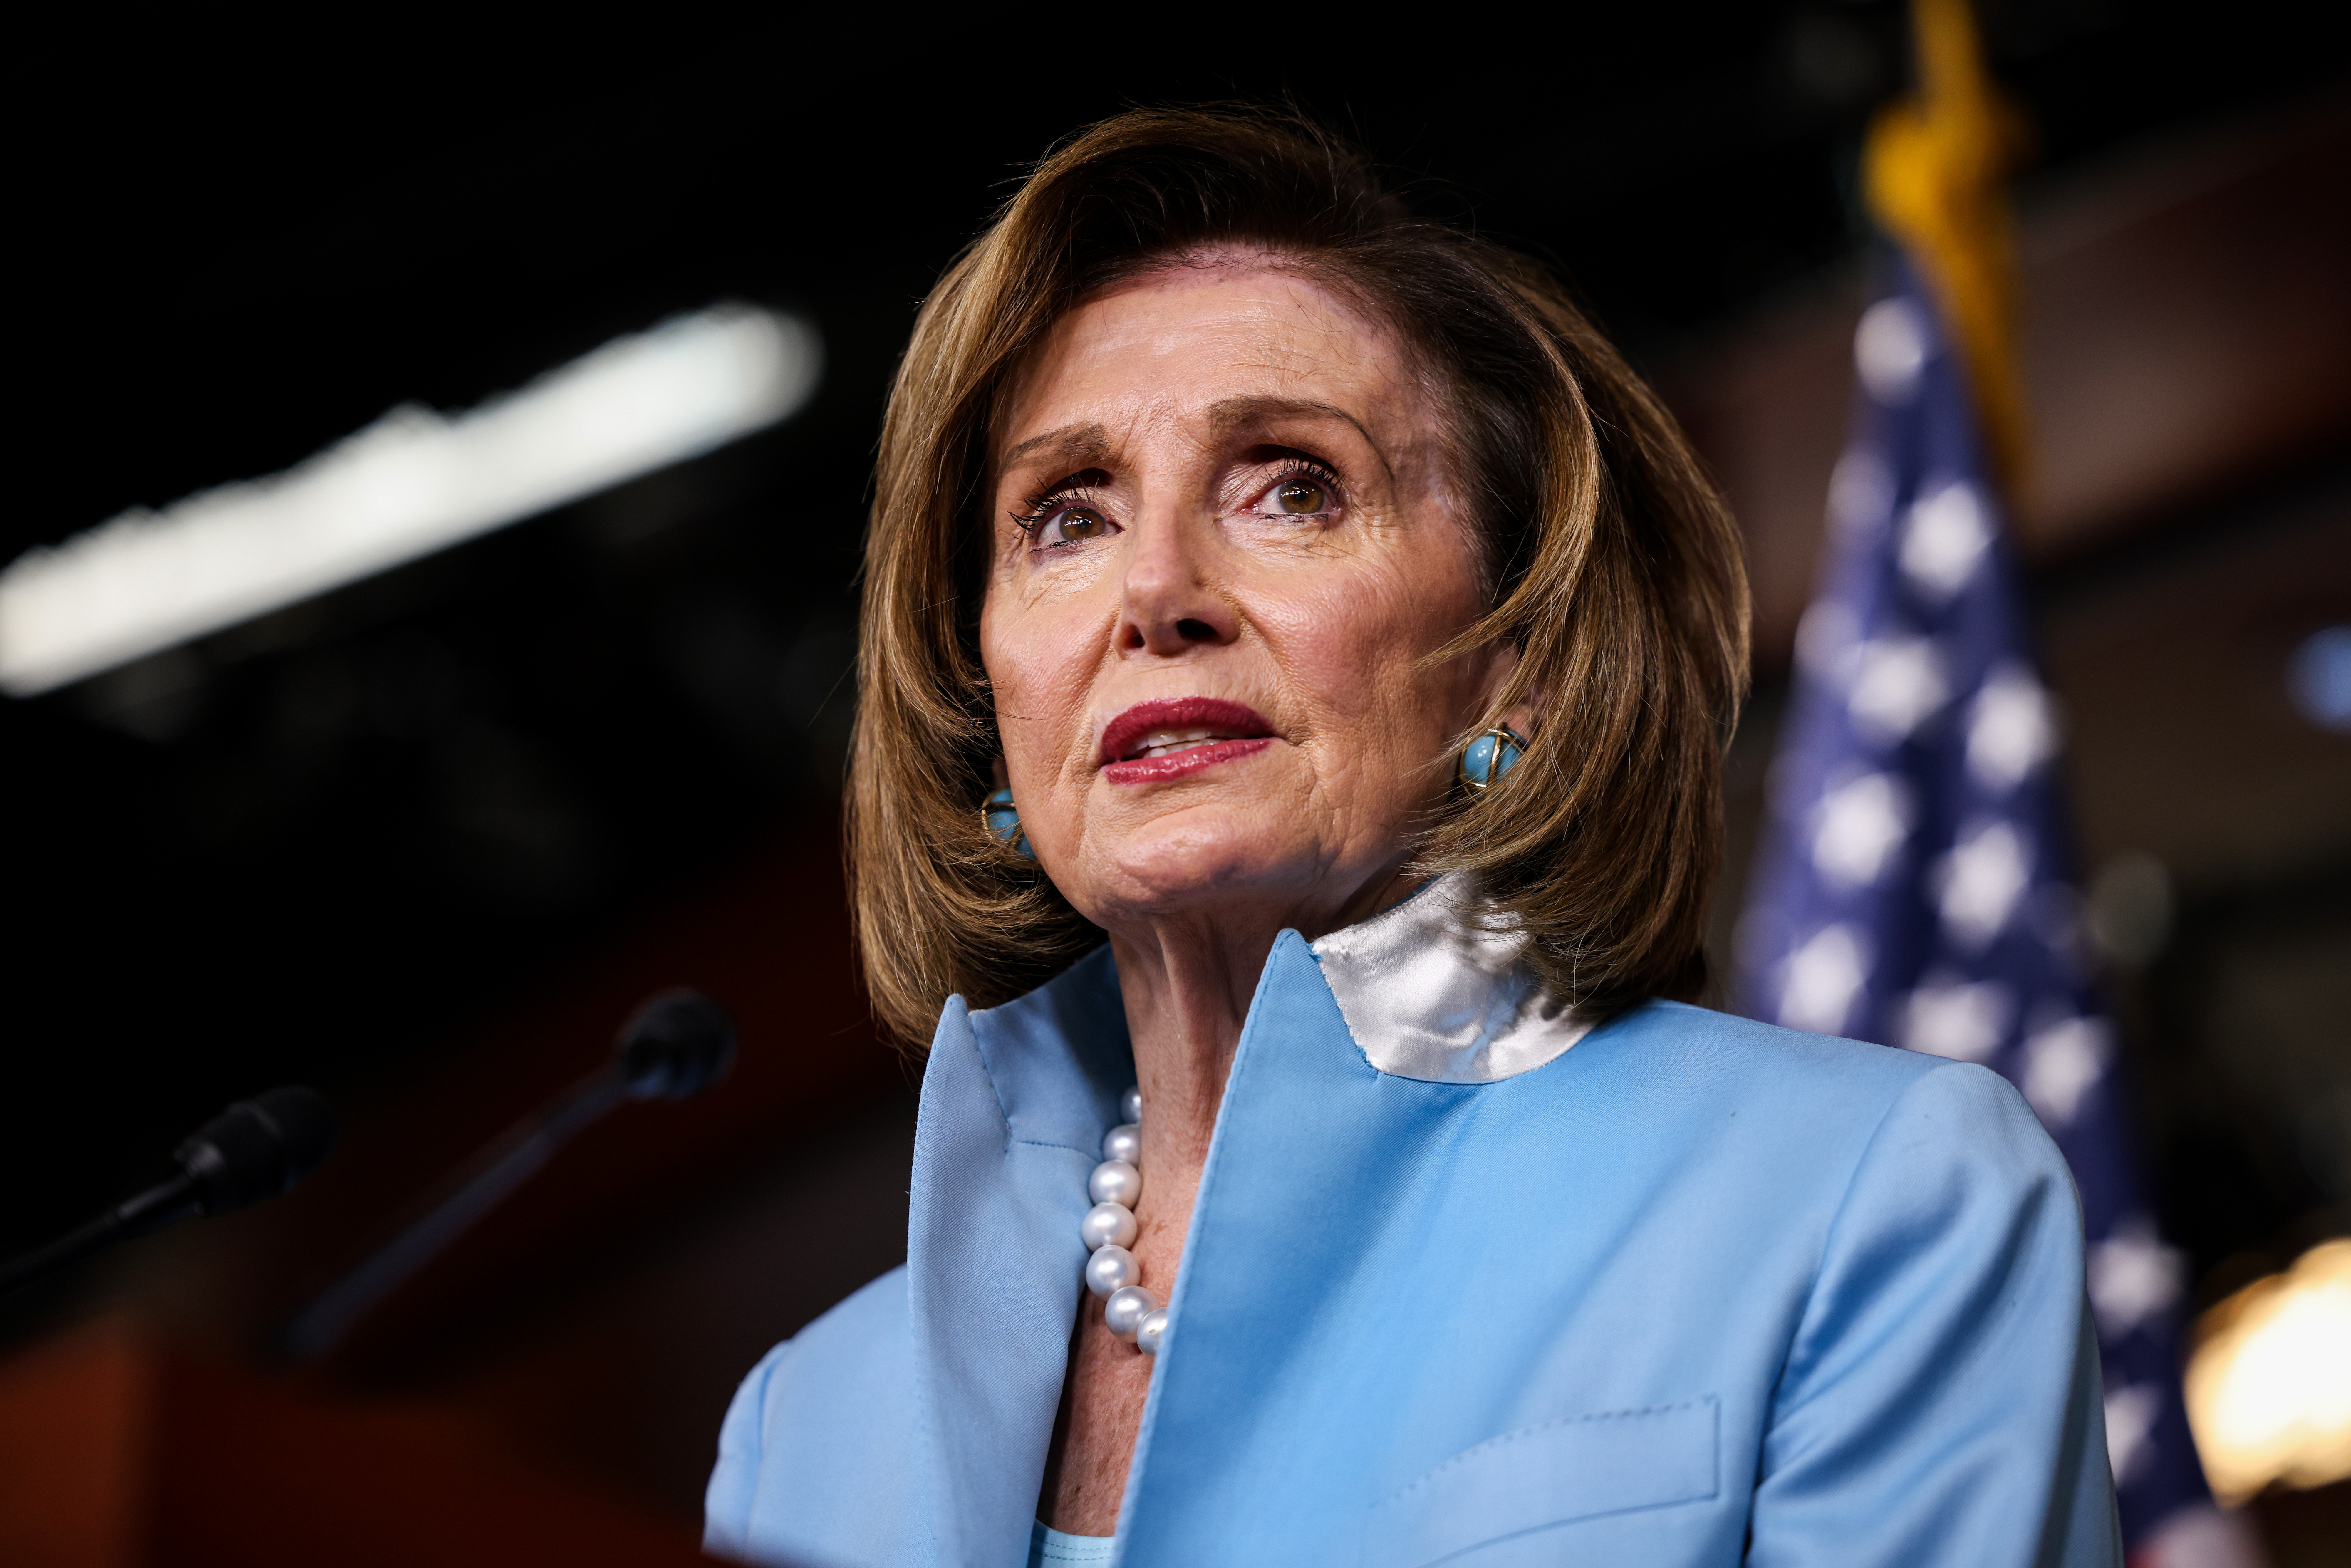 Nancy Pelosi in a light blue jacket looking into the distance with a U.S. flag behind her.